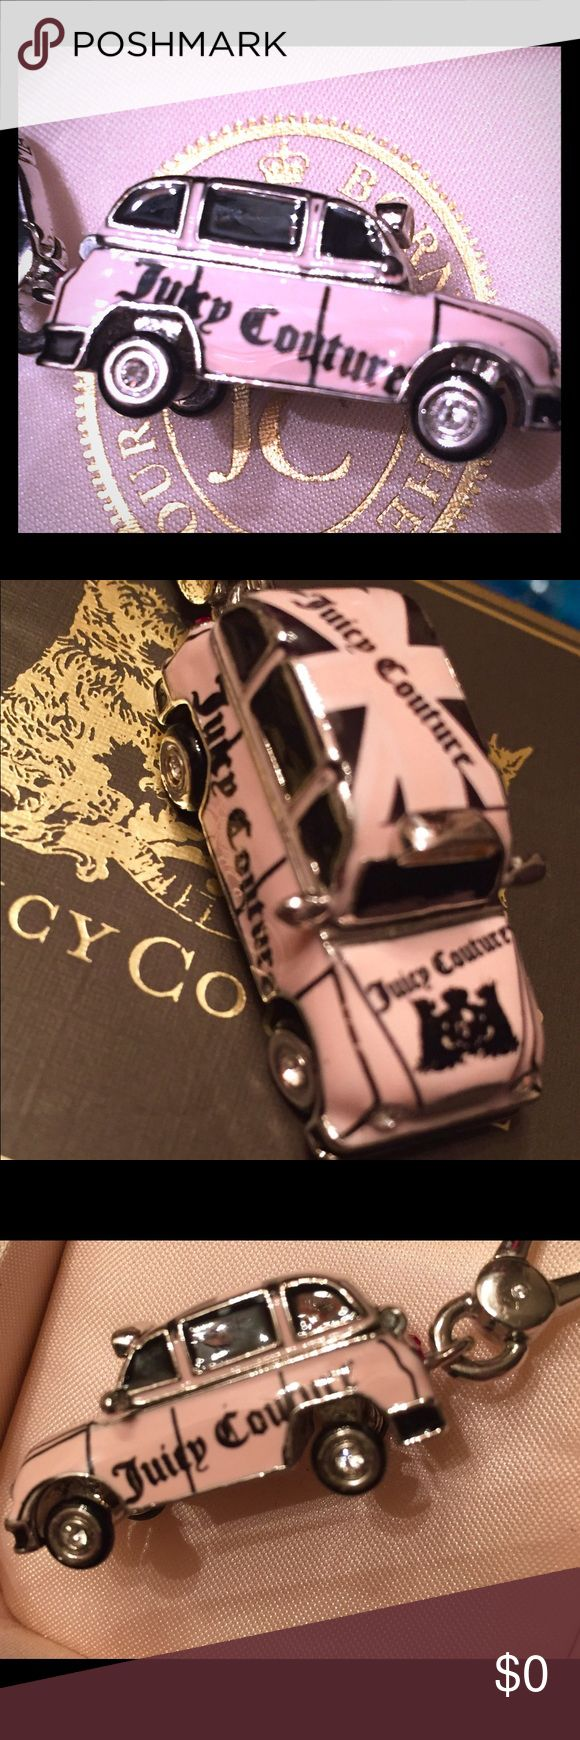 Juicy Couture Pink British taxi cab charm. Juicy Couture Pink British taxi charm. Not for sale, just sharing from my personal collection. Juicy Couture Jewelry